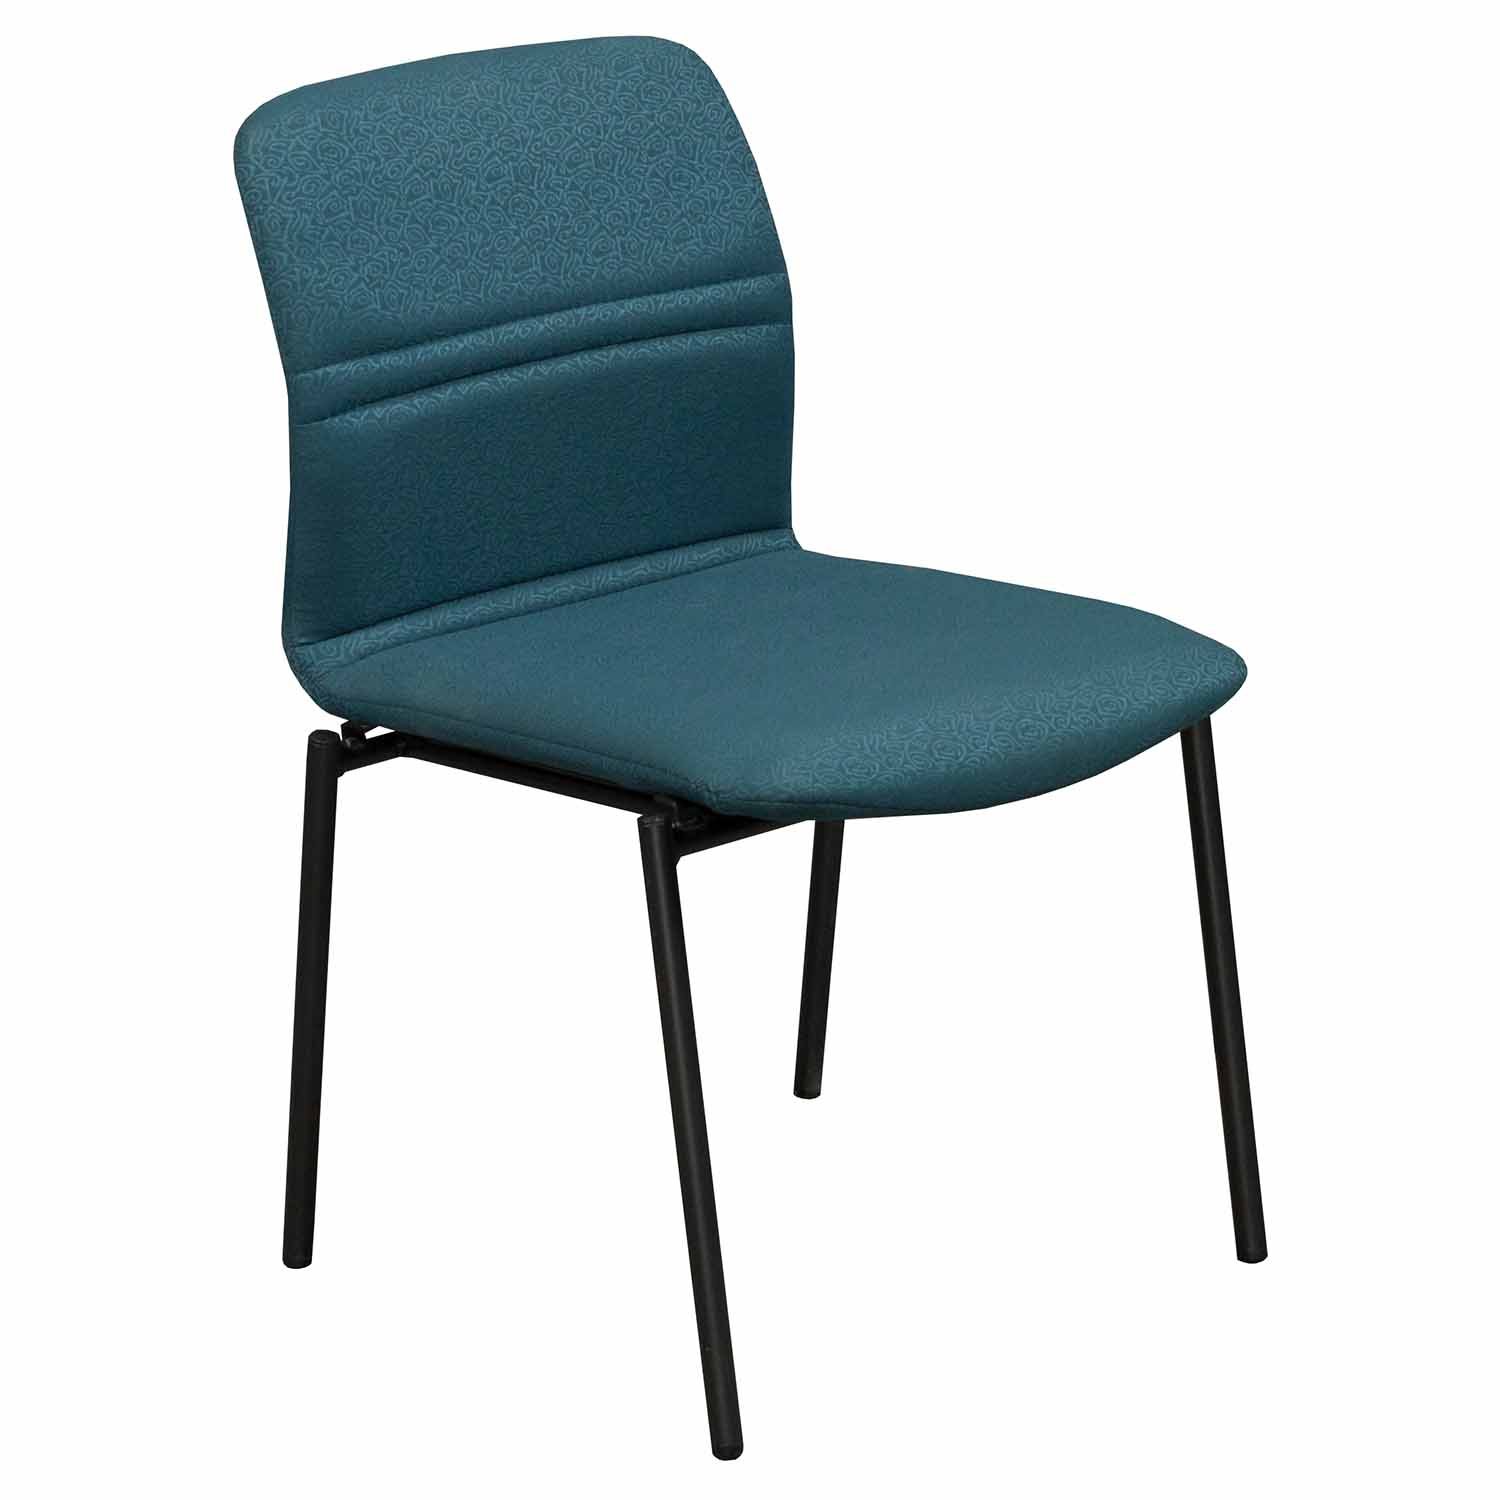 Teal Chair Stylex Bounce Used Stack Chair Teal National Office